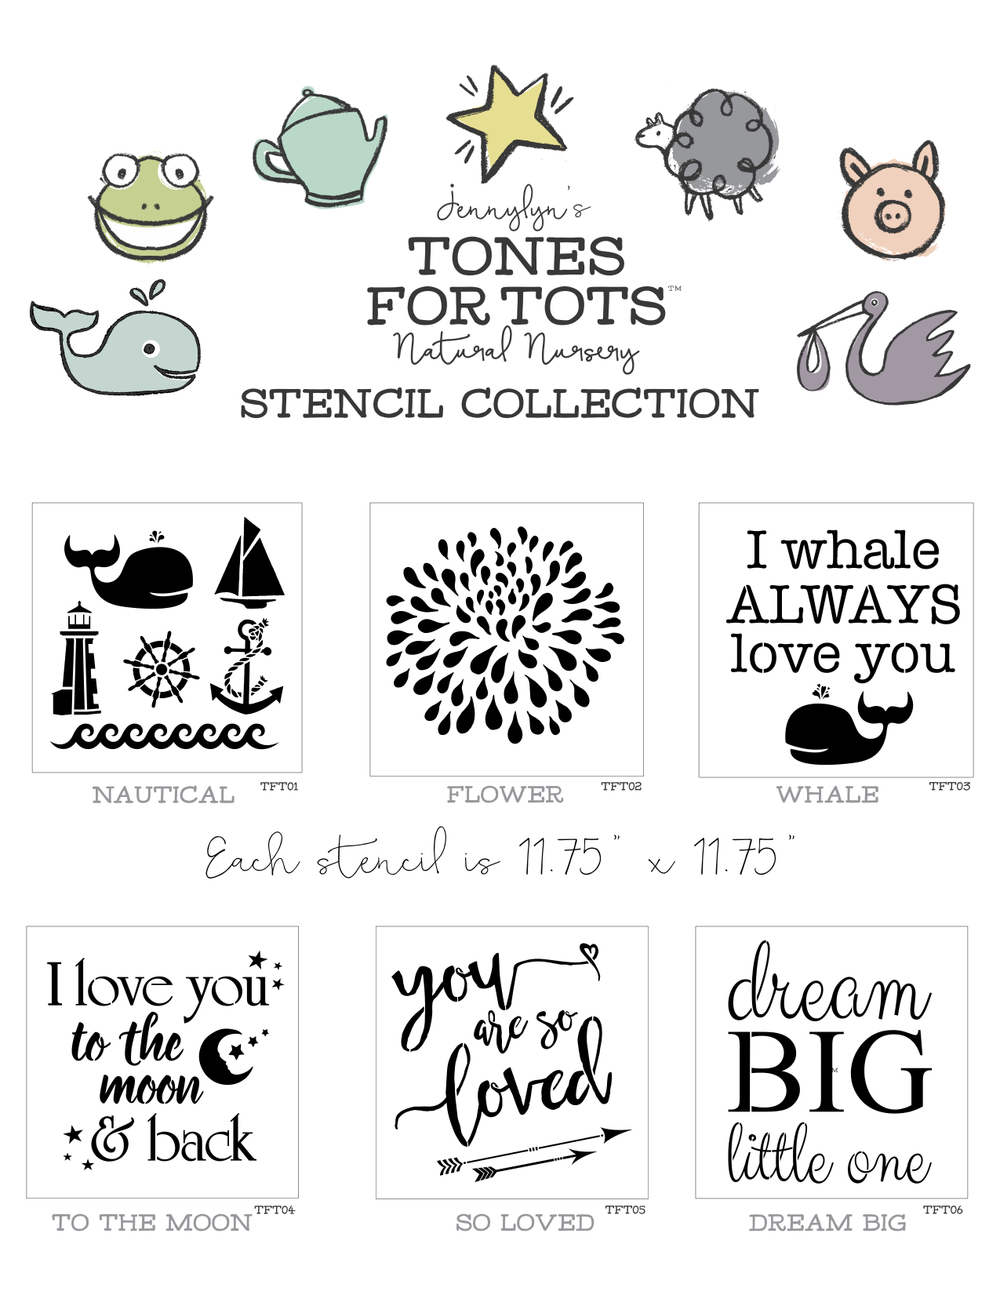 Jennylyn's Tones for Tots Stencil Collection available at My Painted Door.